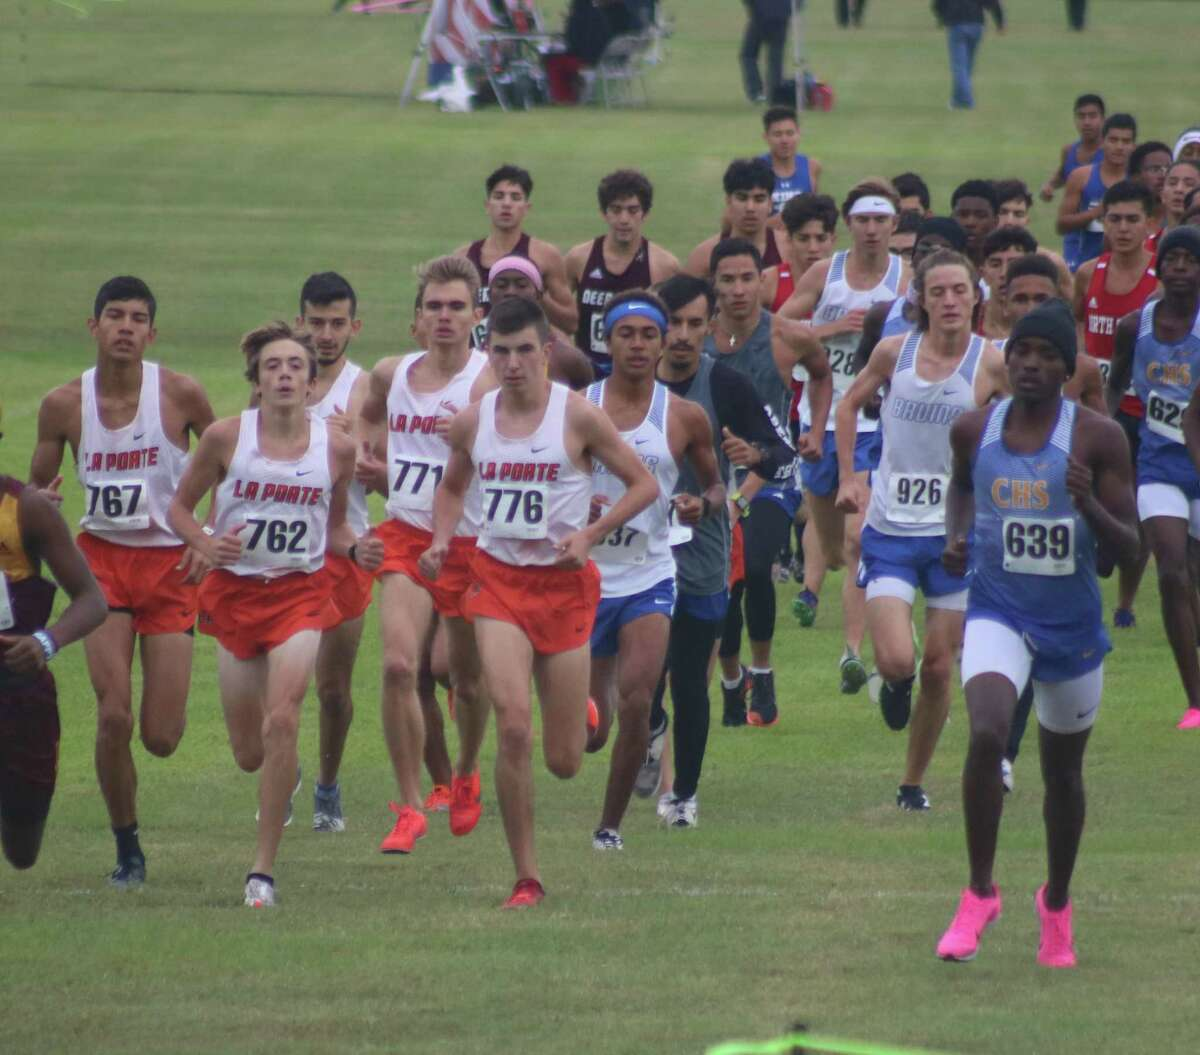 The eventual District 21-6A champion Bulldogs remain in a pack after the opening distance to the 5K race this past November. It would be coach Zachary Johnson's last team title to celebrate now that he's announced he's departing for Friendswood High School.